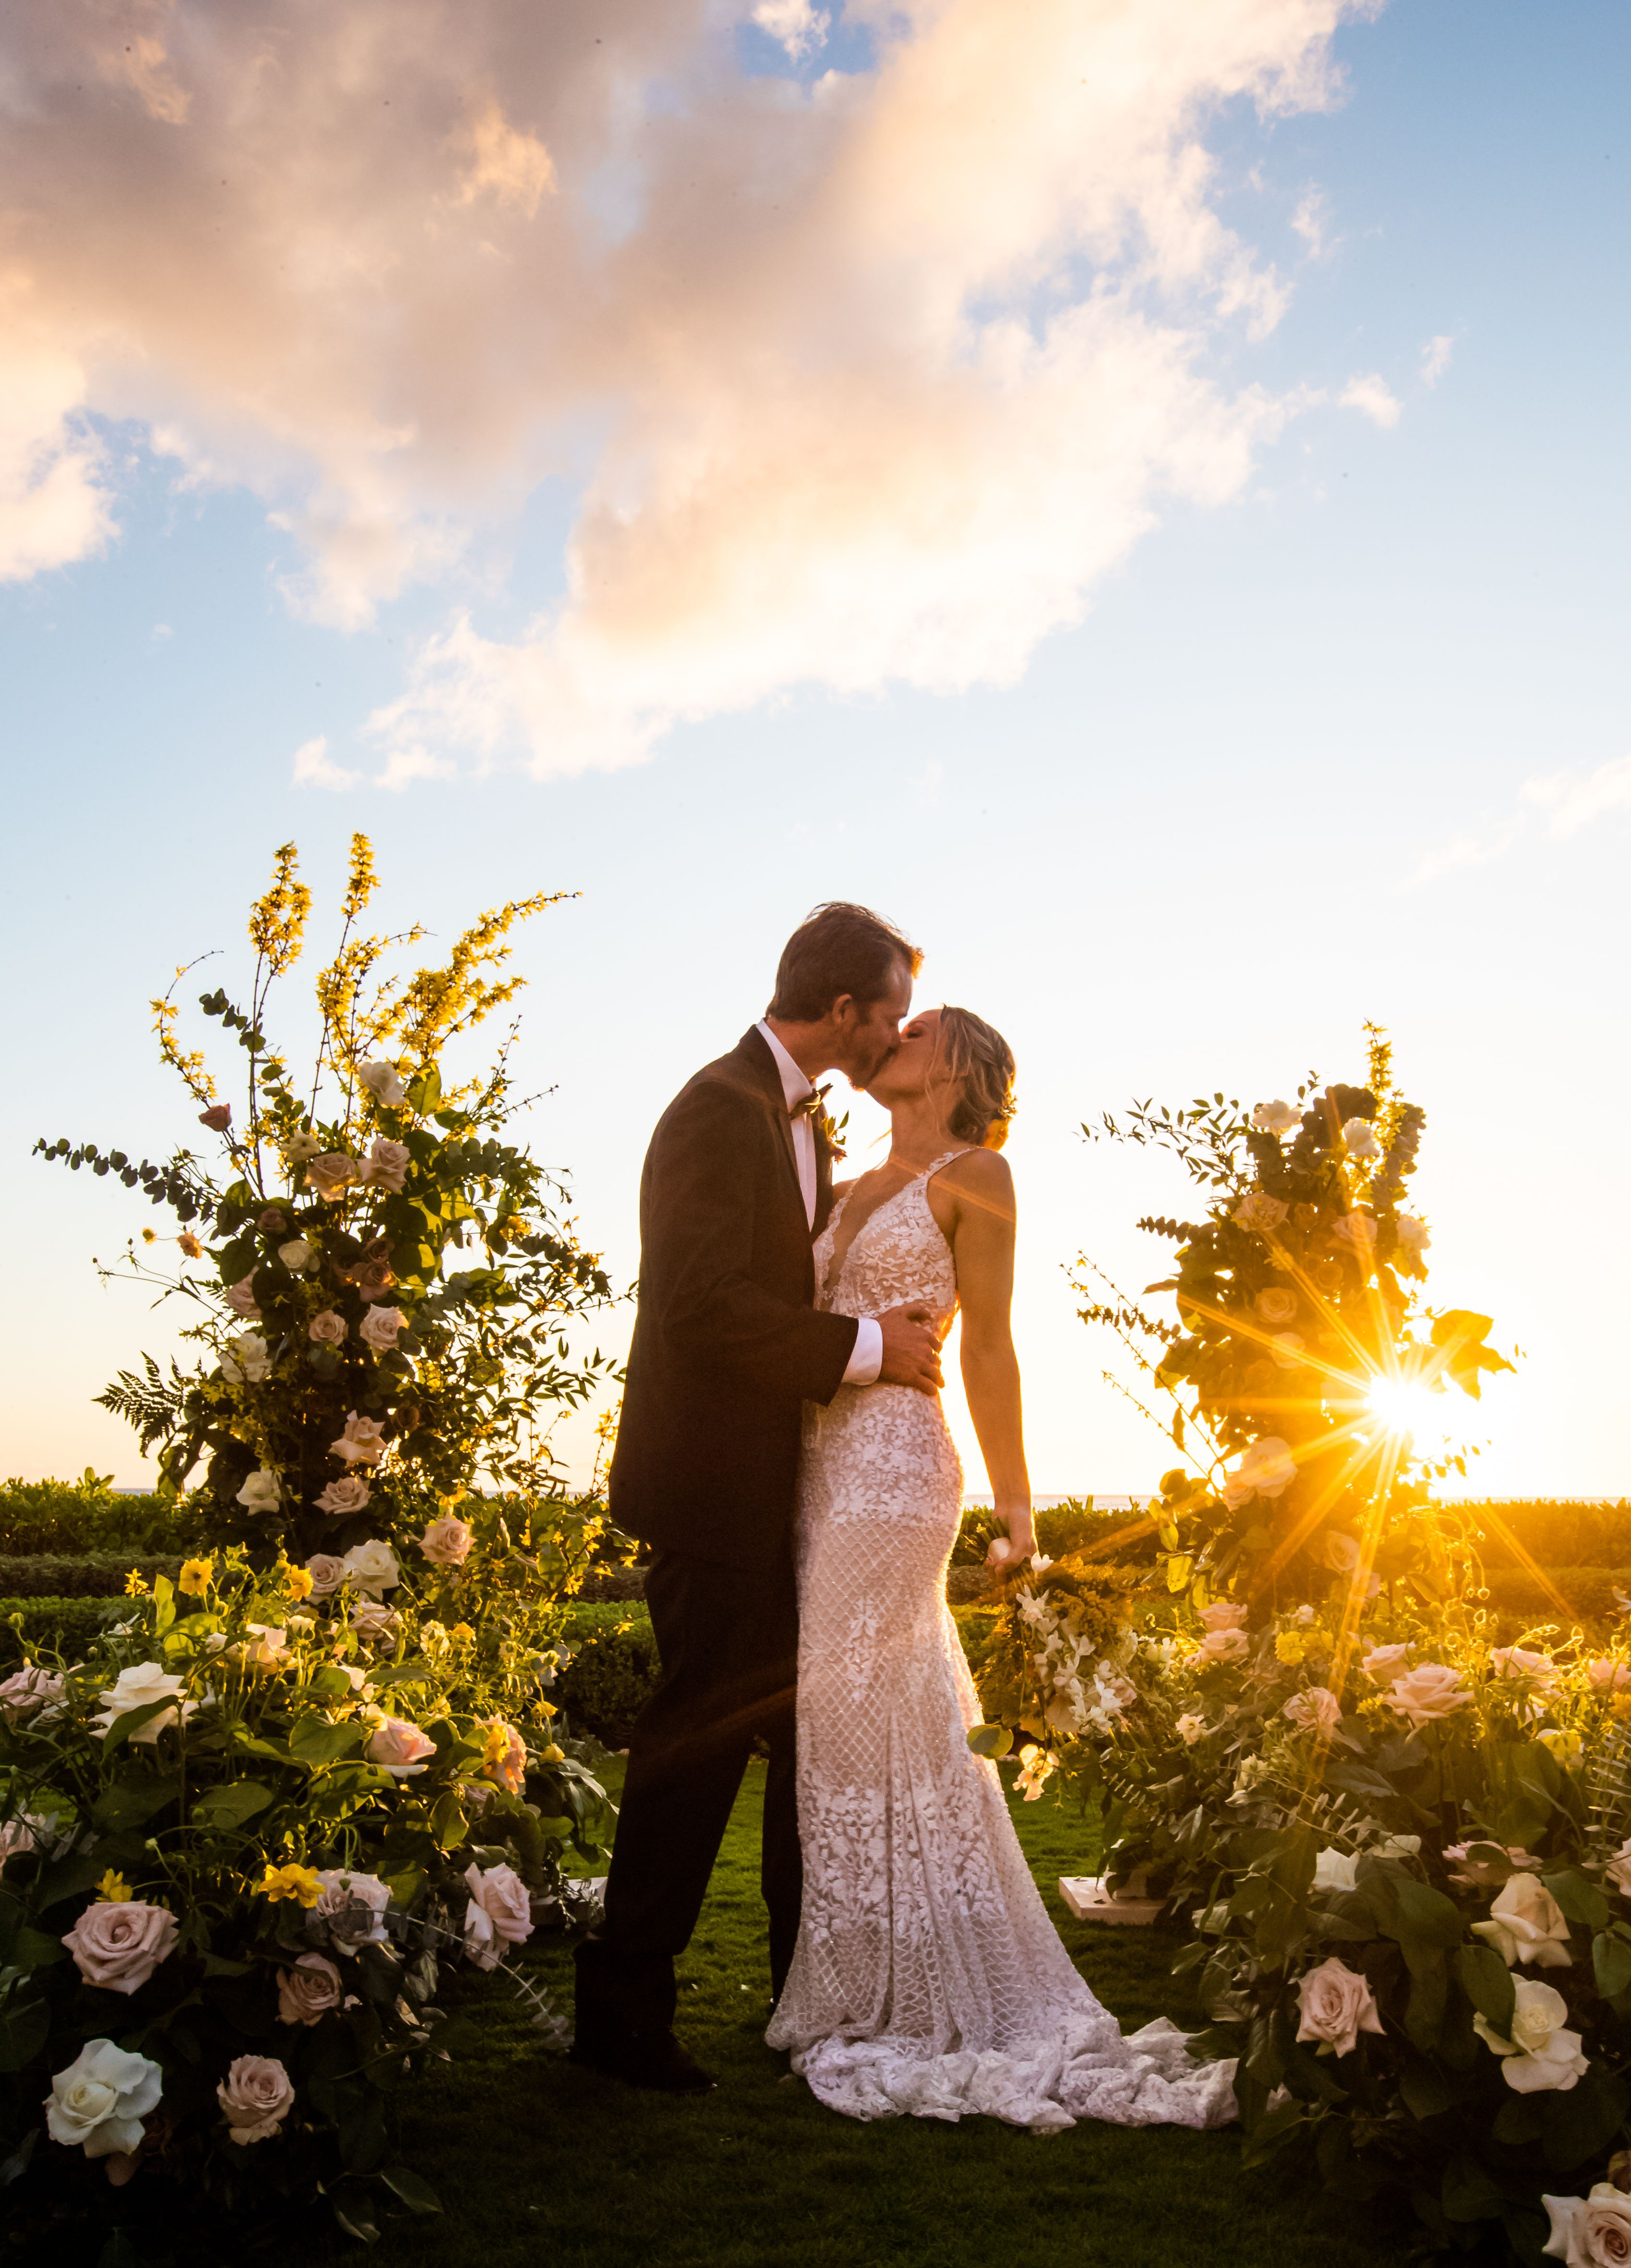 Love is in the air🙌😍 That sunset though... Photo by @connortrimble  #oahu #hawaii #wedding #styled #ceremony #hawaiilife #weddings #weddinggoals #oahulife #ceremonydecor #ceremonyflowers #luckyweliveinhawaii #weddinglook #outdoorceremony #oahuevents #bridal #dreamwedding #love #design #aloha #weddingmoments #hawaiian #weddingceremonydecor #weddinggoals #luxurywedding #weddingbells #hawaiilove #styledetails